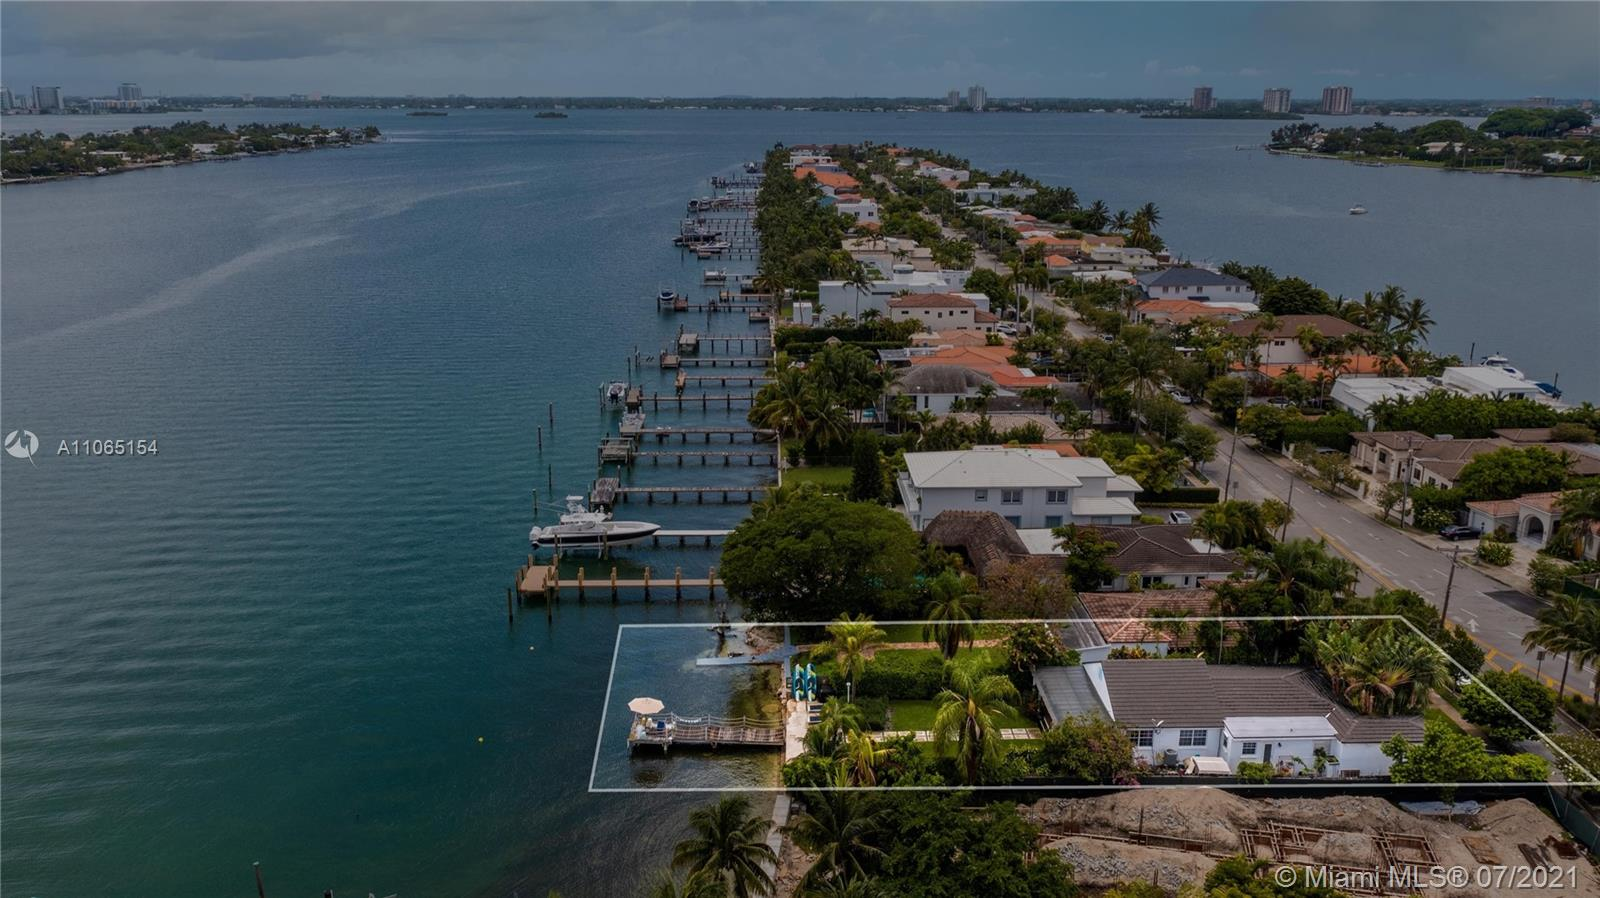 This beautiful and spacious home at 2,015 SQF of living space built on lot of 8,800 SQF, offers the ultimate in waterfront Miami living in gated prestigious Stillwater Drive community in Biscayne Point area. Fitted with wood, tile, marble floors throughout, floor to ceiling windows, amazing views of the water from living room, dining, and kitchen areas, cozy outside setting, excellent for entertainment, with instant access to the bay, intercoastal and ocean. Set in amazing tropical landscape, perfect for paddle boarding, kayaking, and all water sports, walking distance to beach, centrally located between Bal Harbour and South Beach and minutes to the best restaurants, entertainment, and shopping in town. Great opportunity to purchase a waterfront home & live in a sea, sun & sand paradise!